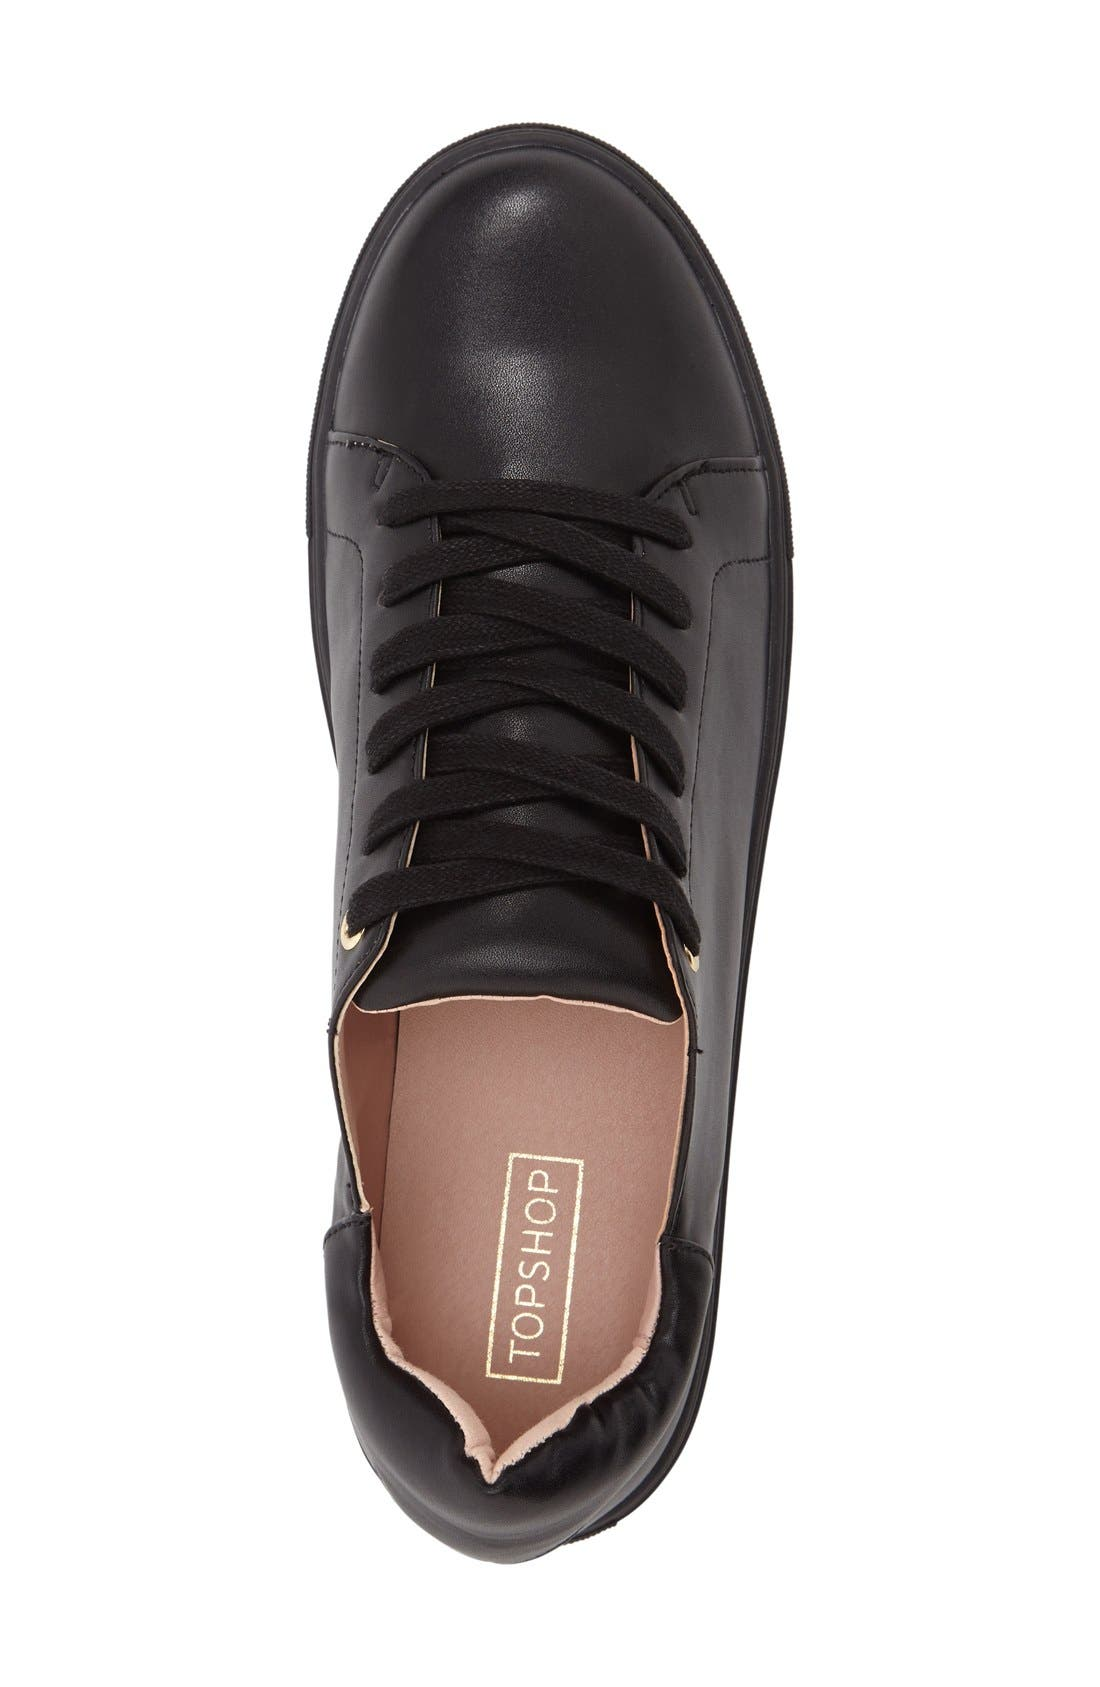 TOPSHOP, Catseye Sneaker, Alternate thumbnail 3, color, 001